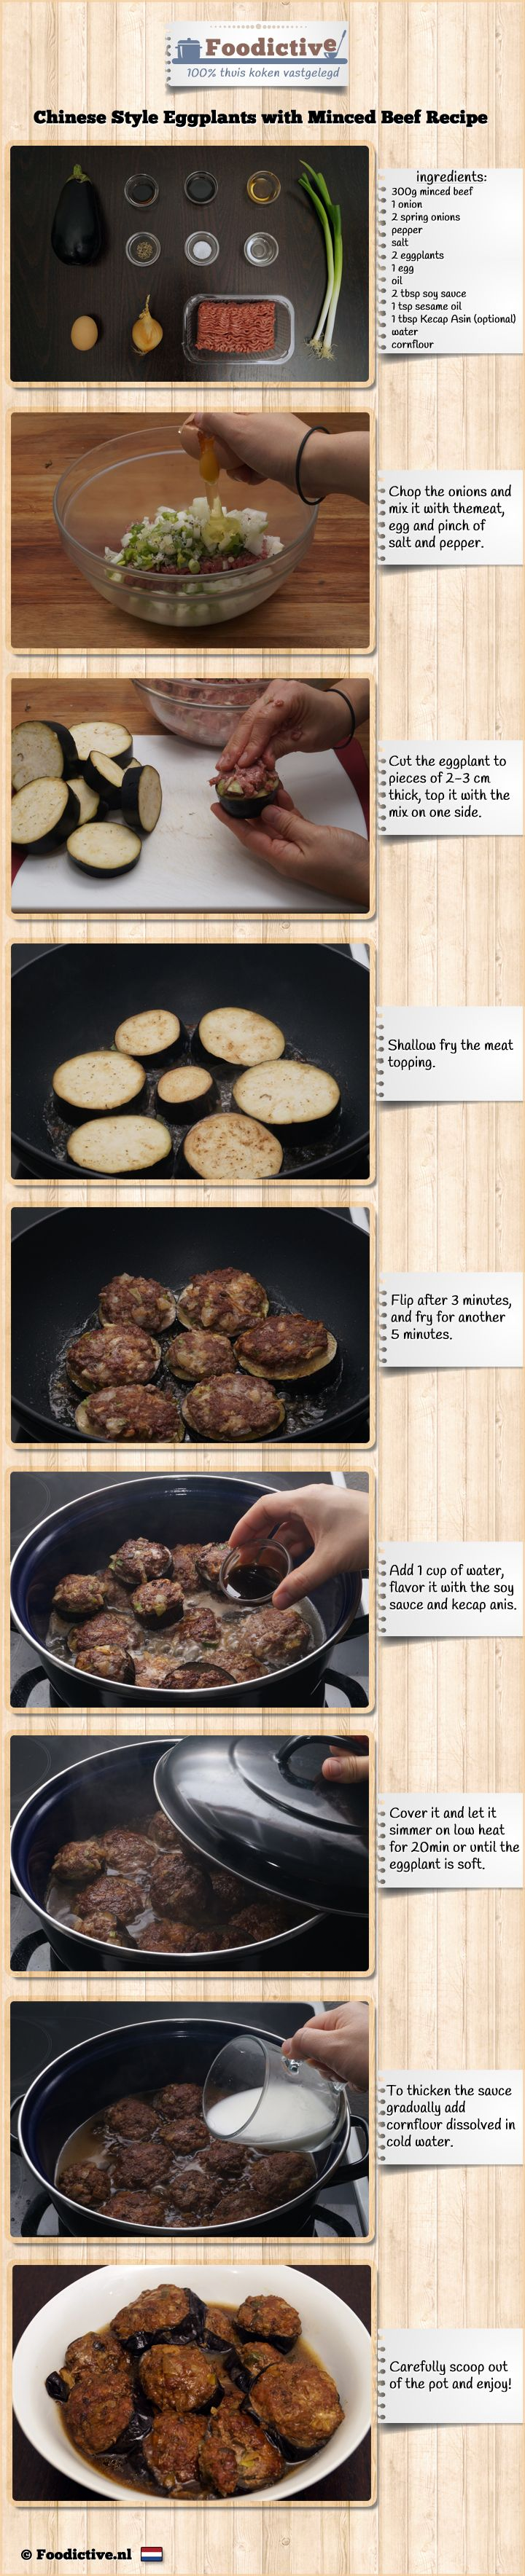 Chinese style eggplants with minced beef - An alternative way of sharing a recipe, inspired by the food infographics. #cooking #recipe